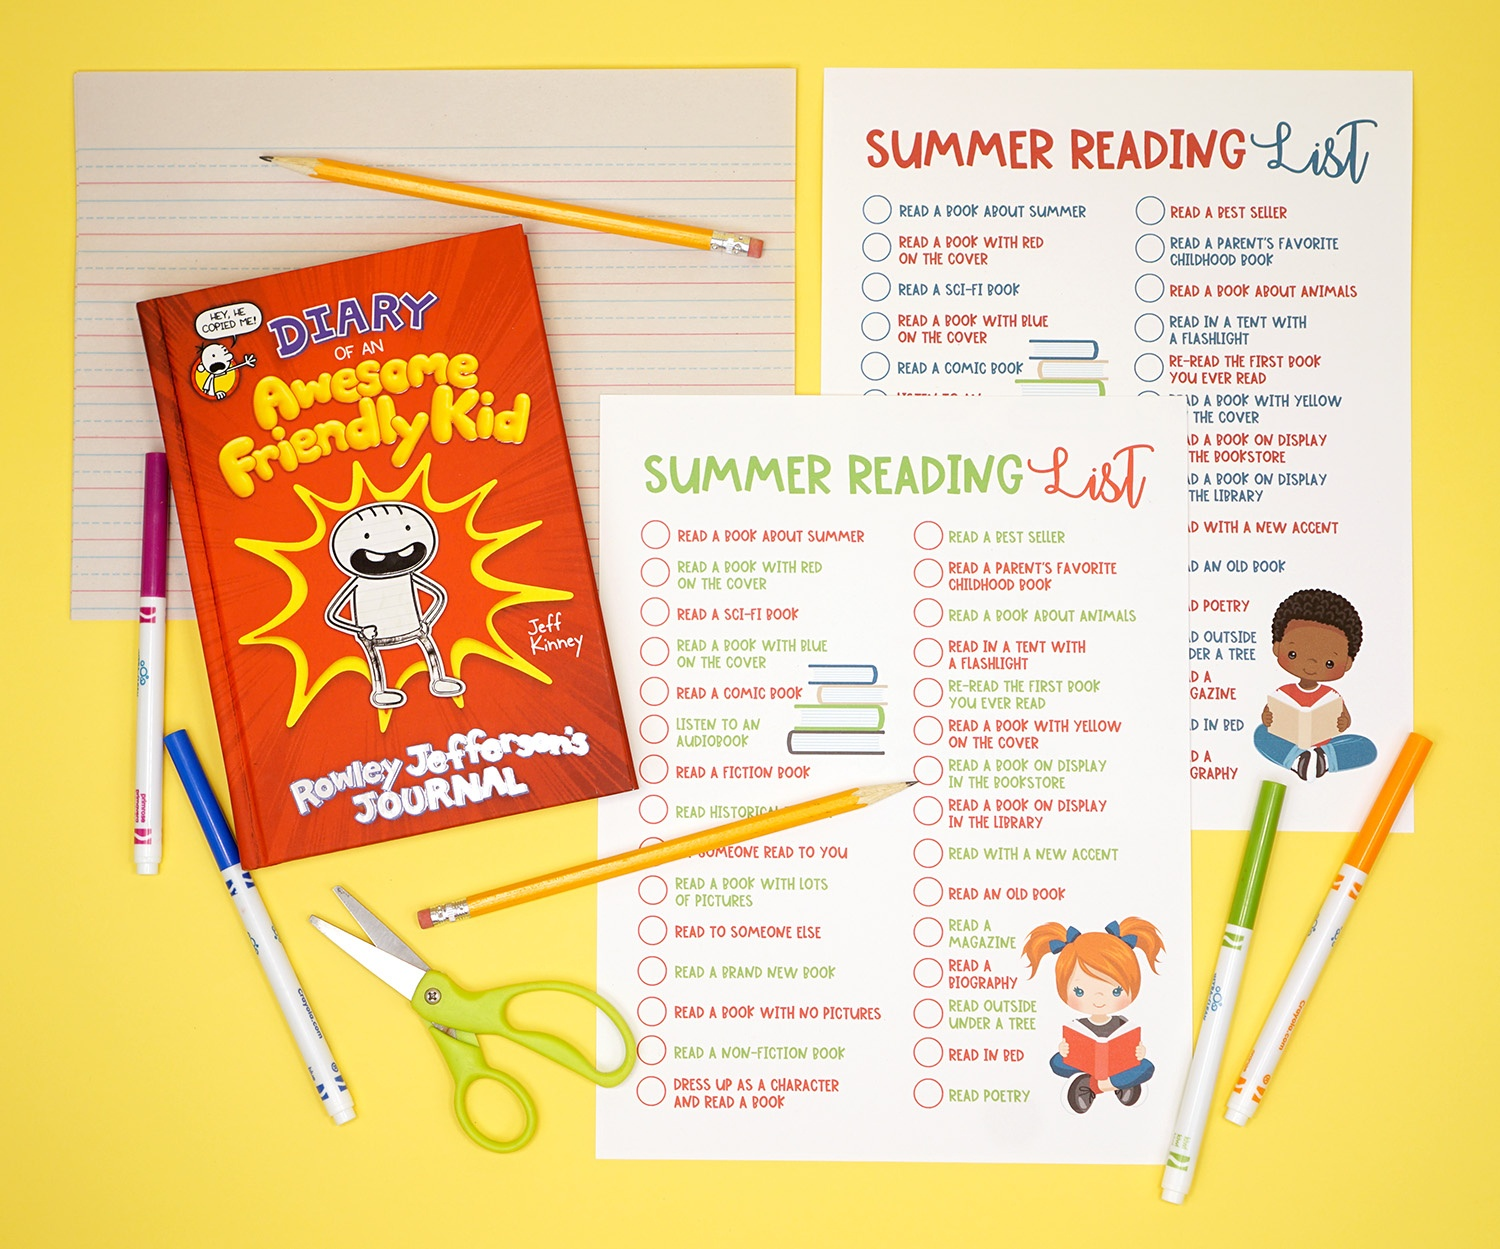 Printable Summer Reading Challenge List For Kids - Happiness Is Homemade - Free Printable Personalized Children's Books